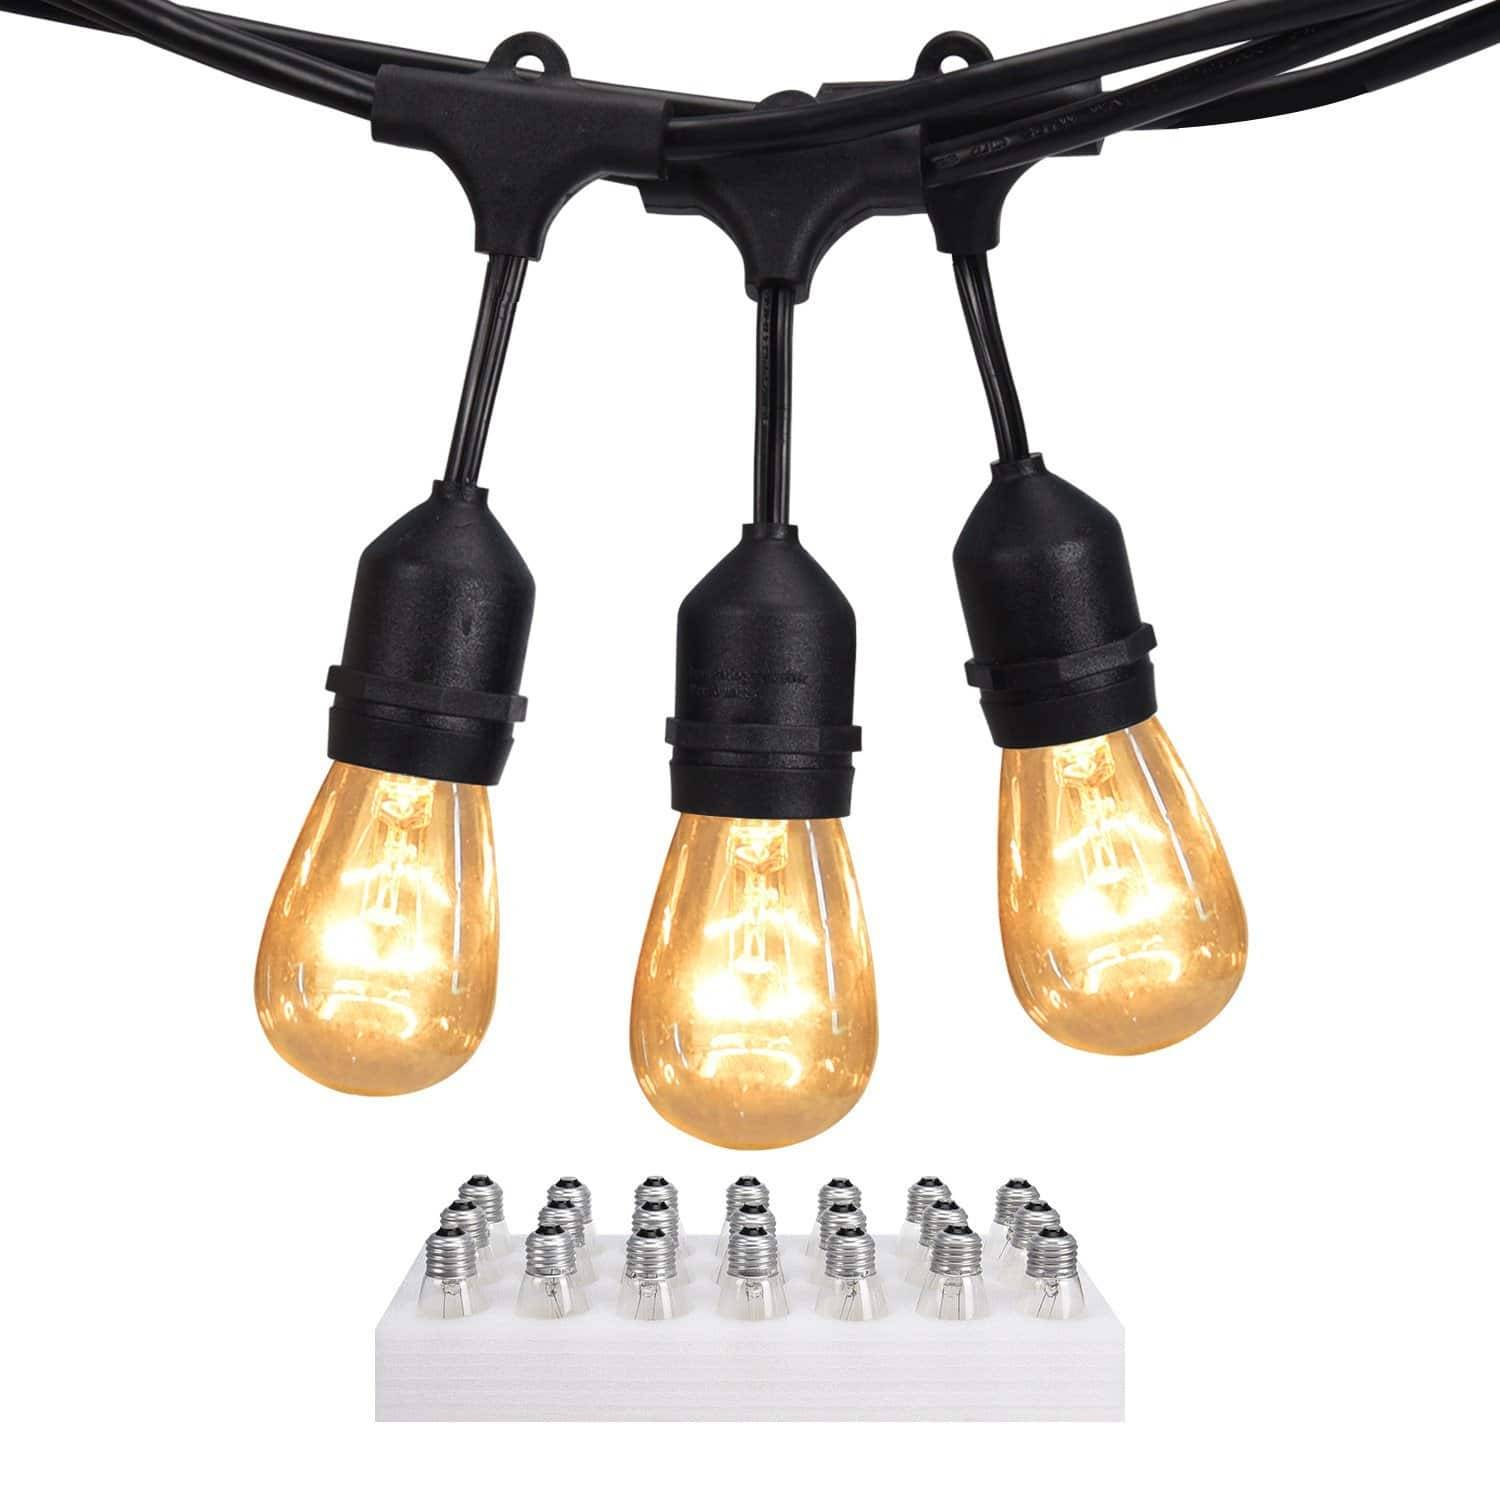 JACKYLED 48 Ft Outdoor String Lights with 21 Incandescent Bulbs for $38.87 @Amazon